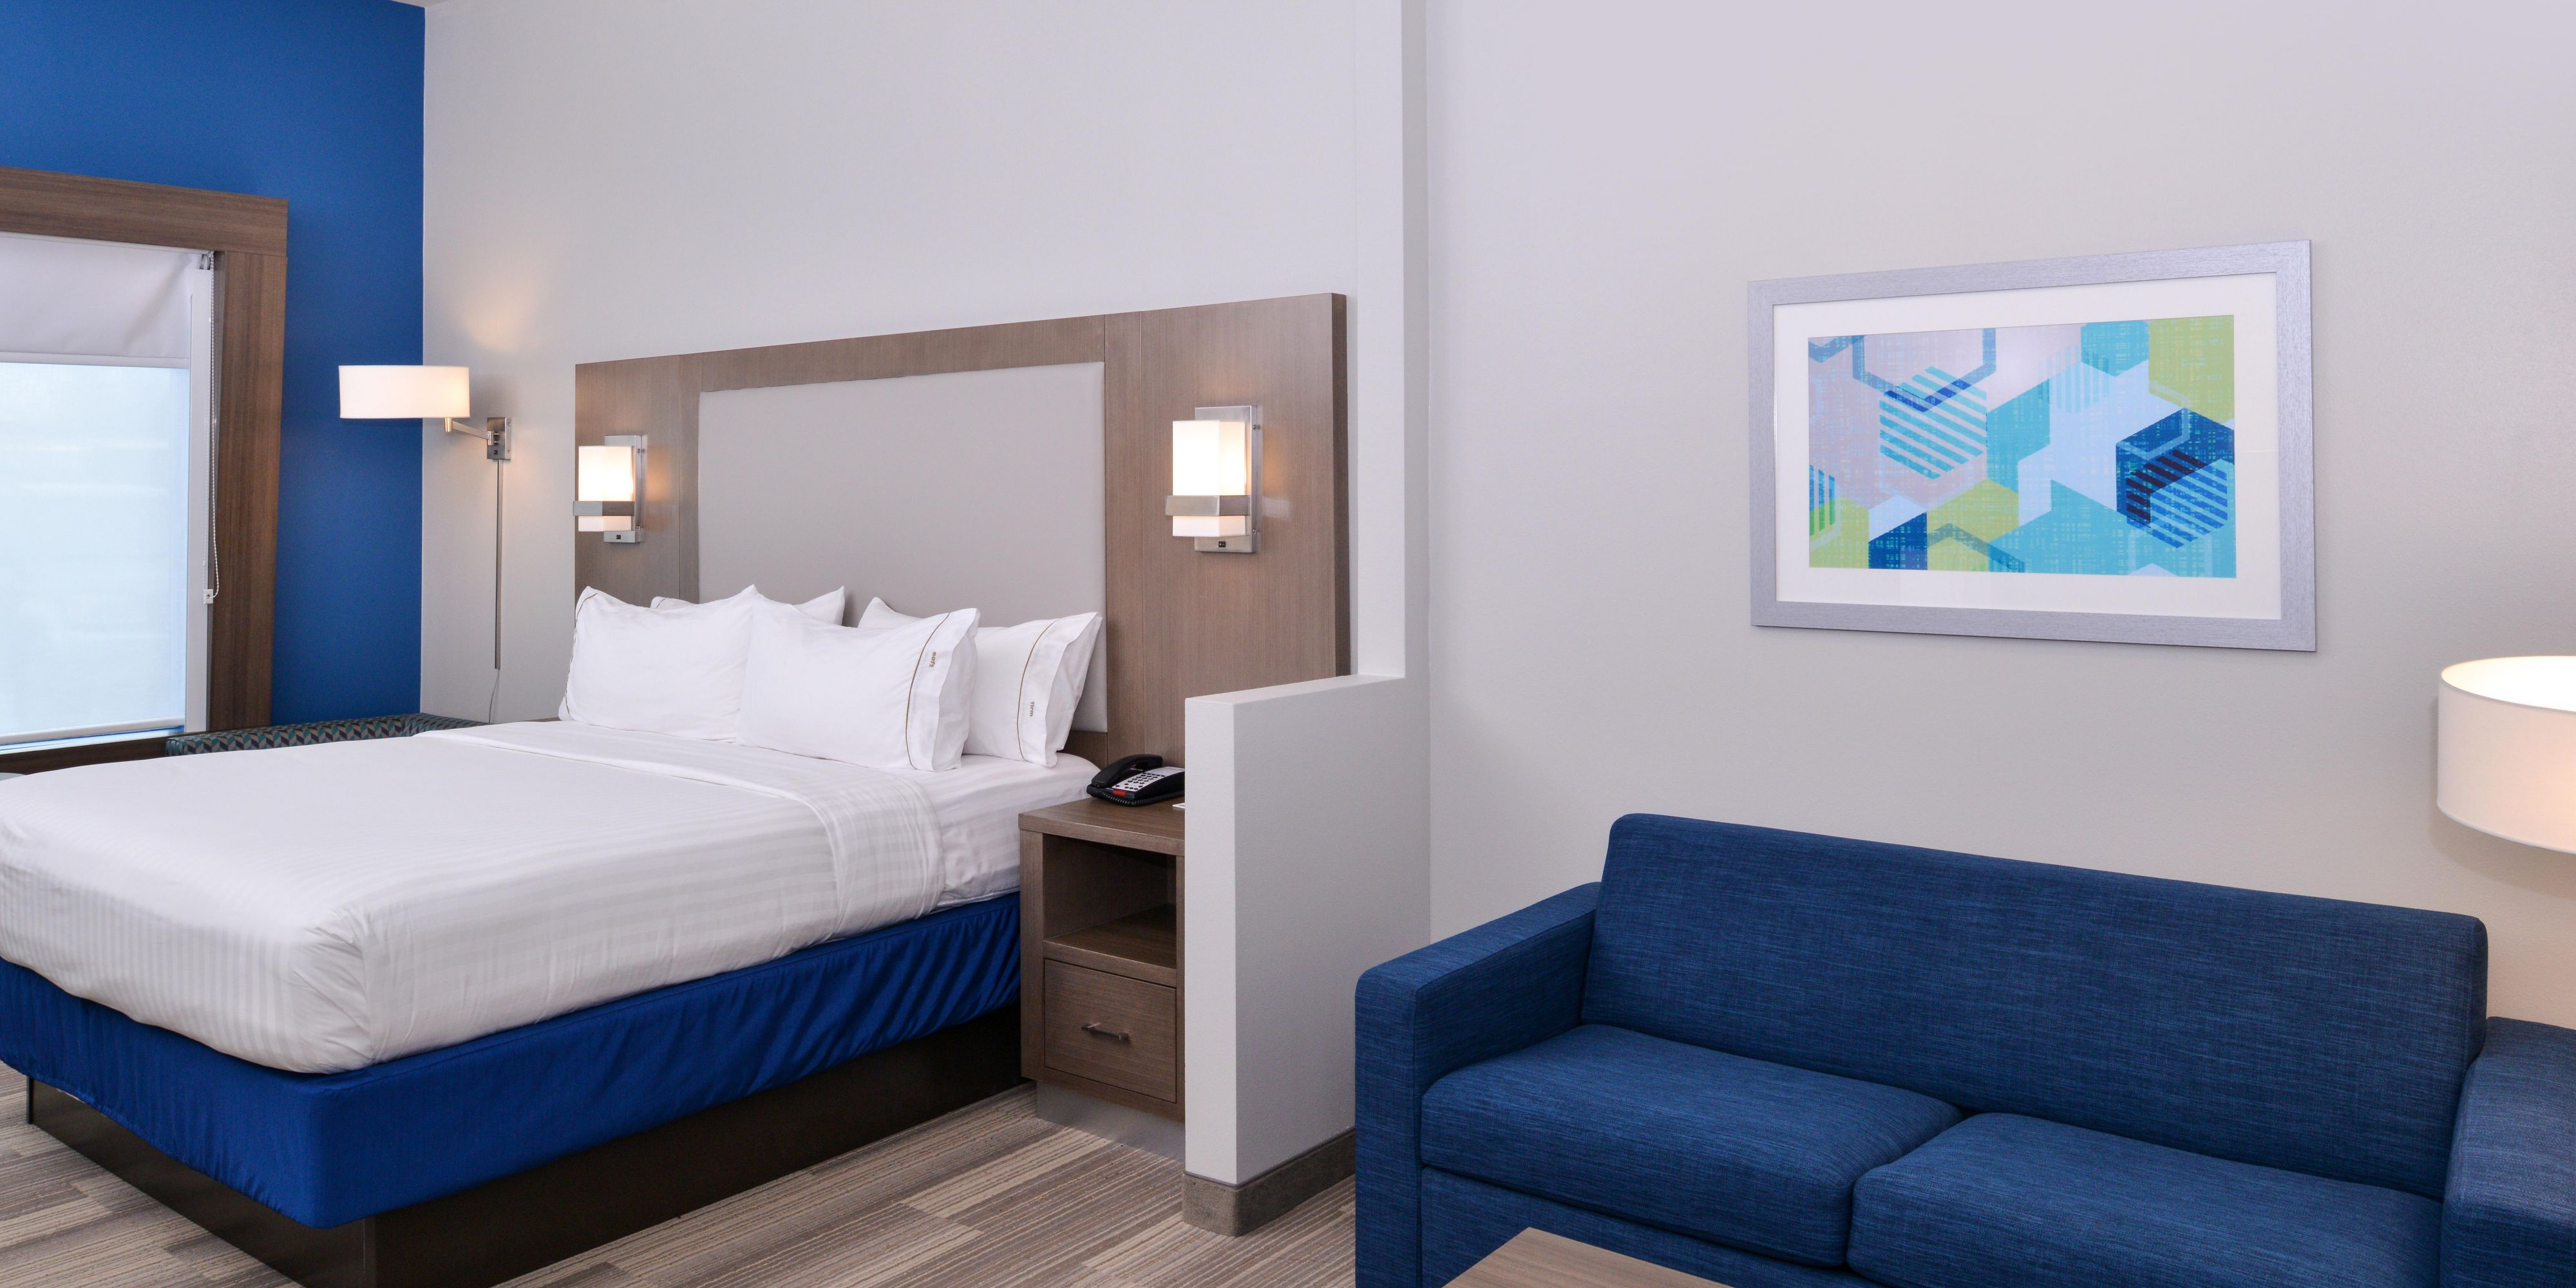 Holiday Inn Express & Suites Houston E - Pasadena Hotel by IHG